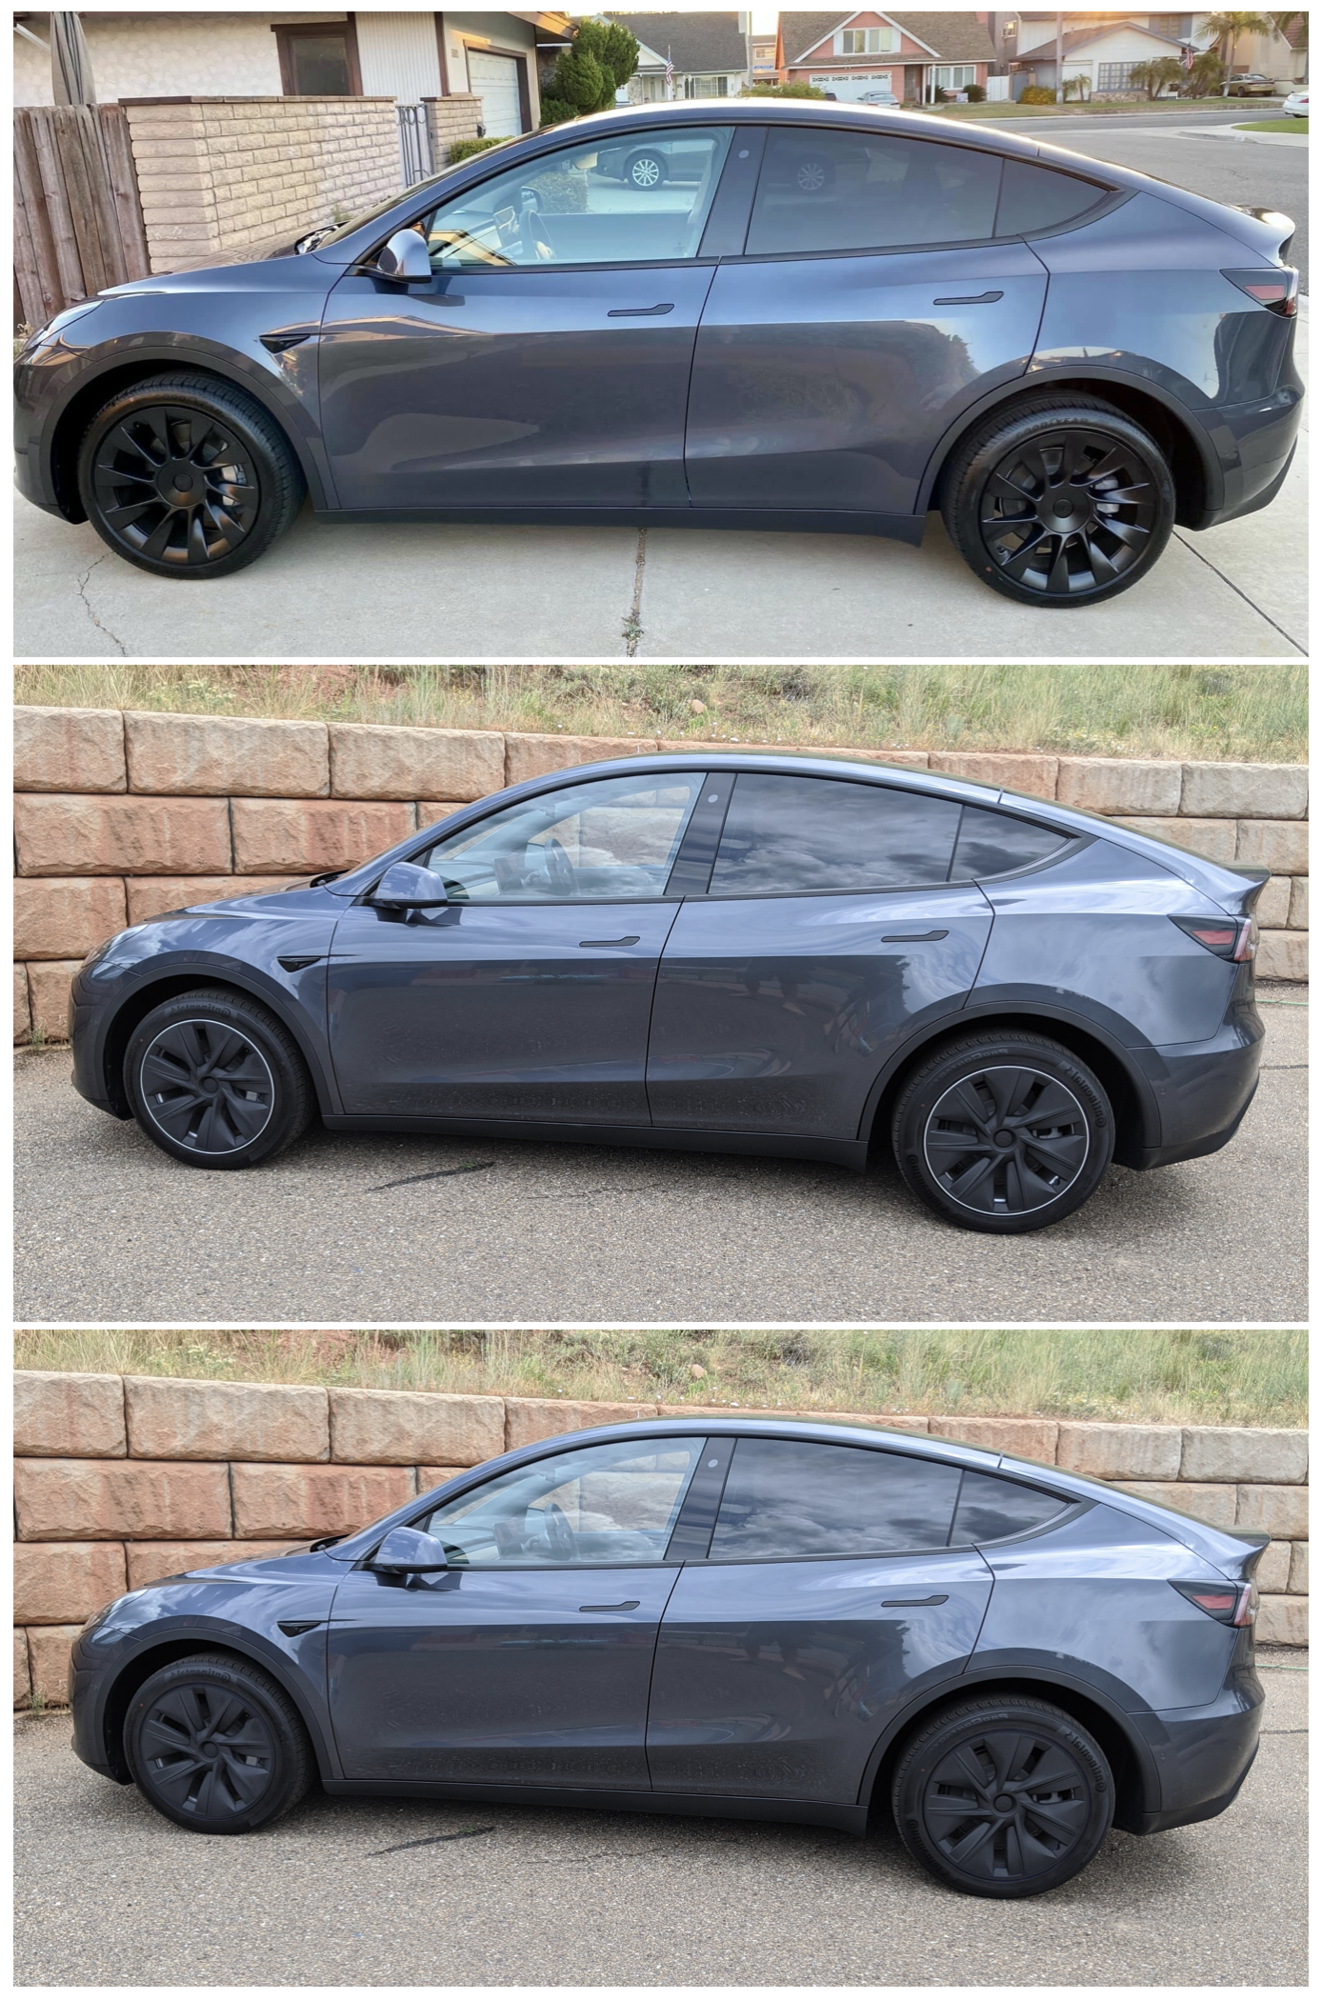 Model Y - 19 Gemini - Inductions vs Painted Covers vs Painted Rims.png